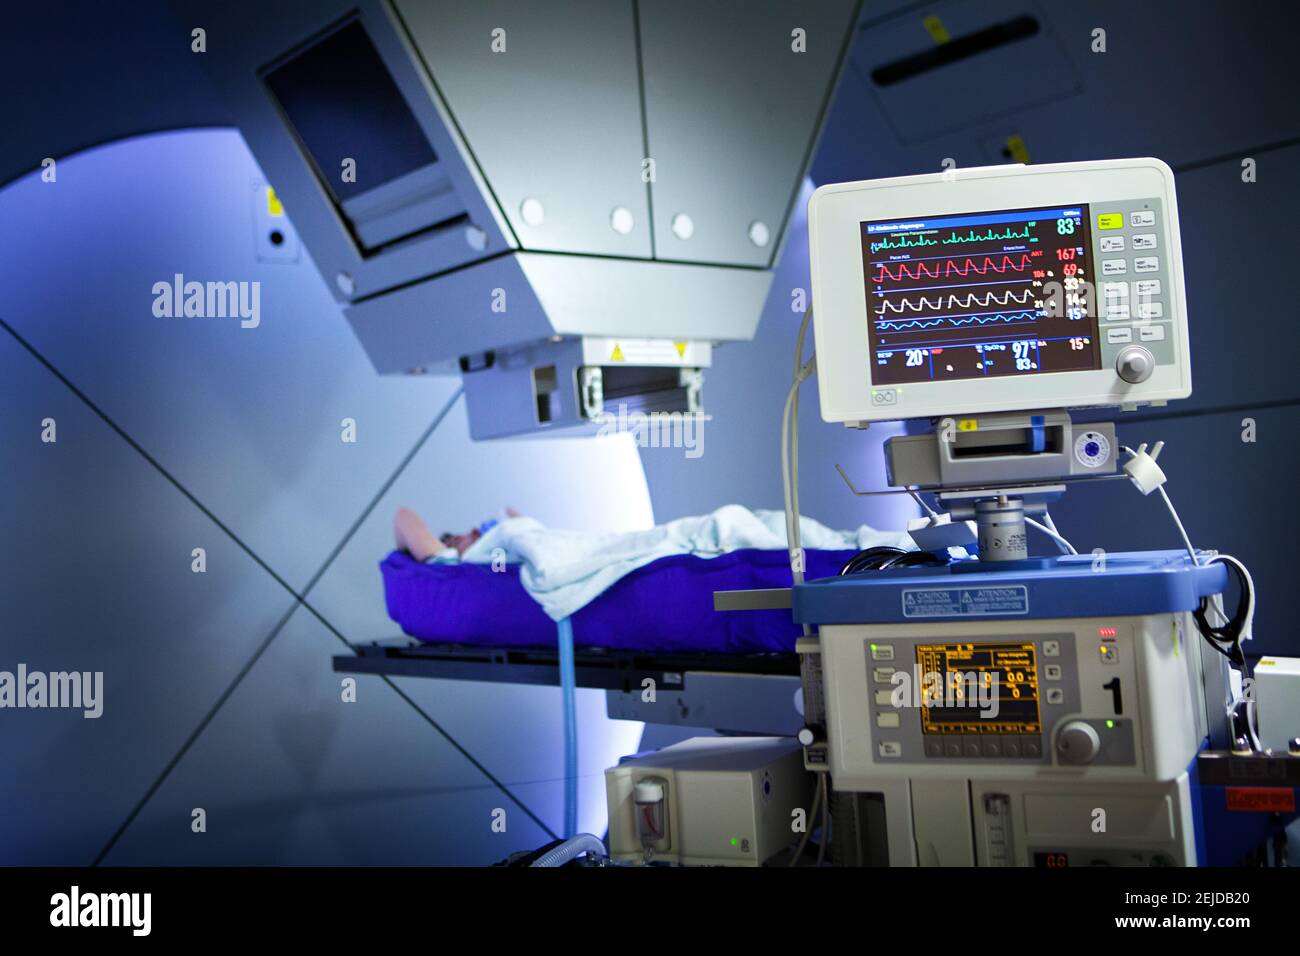 Proton therapy irradiates cancer cells with a beam of protons inside the tumor. Stock Photo